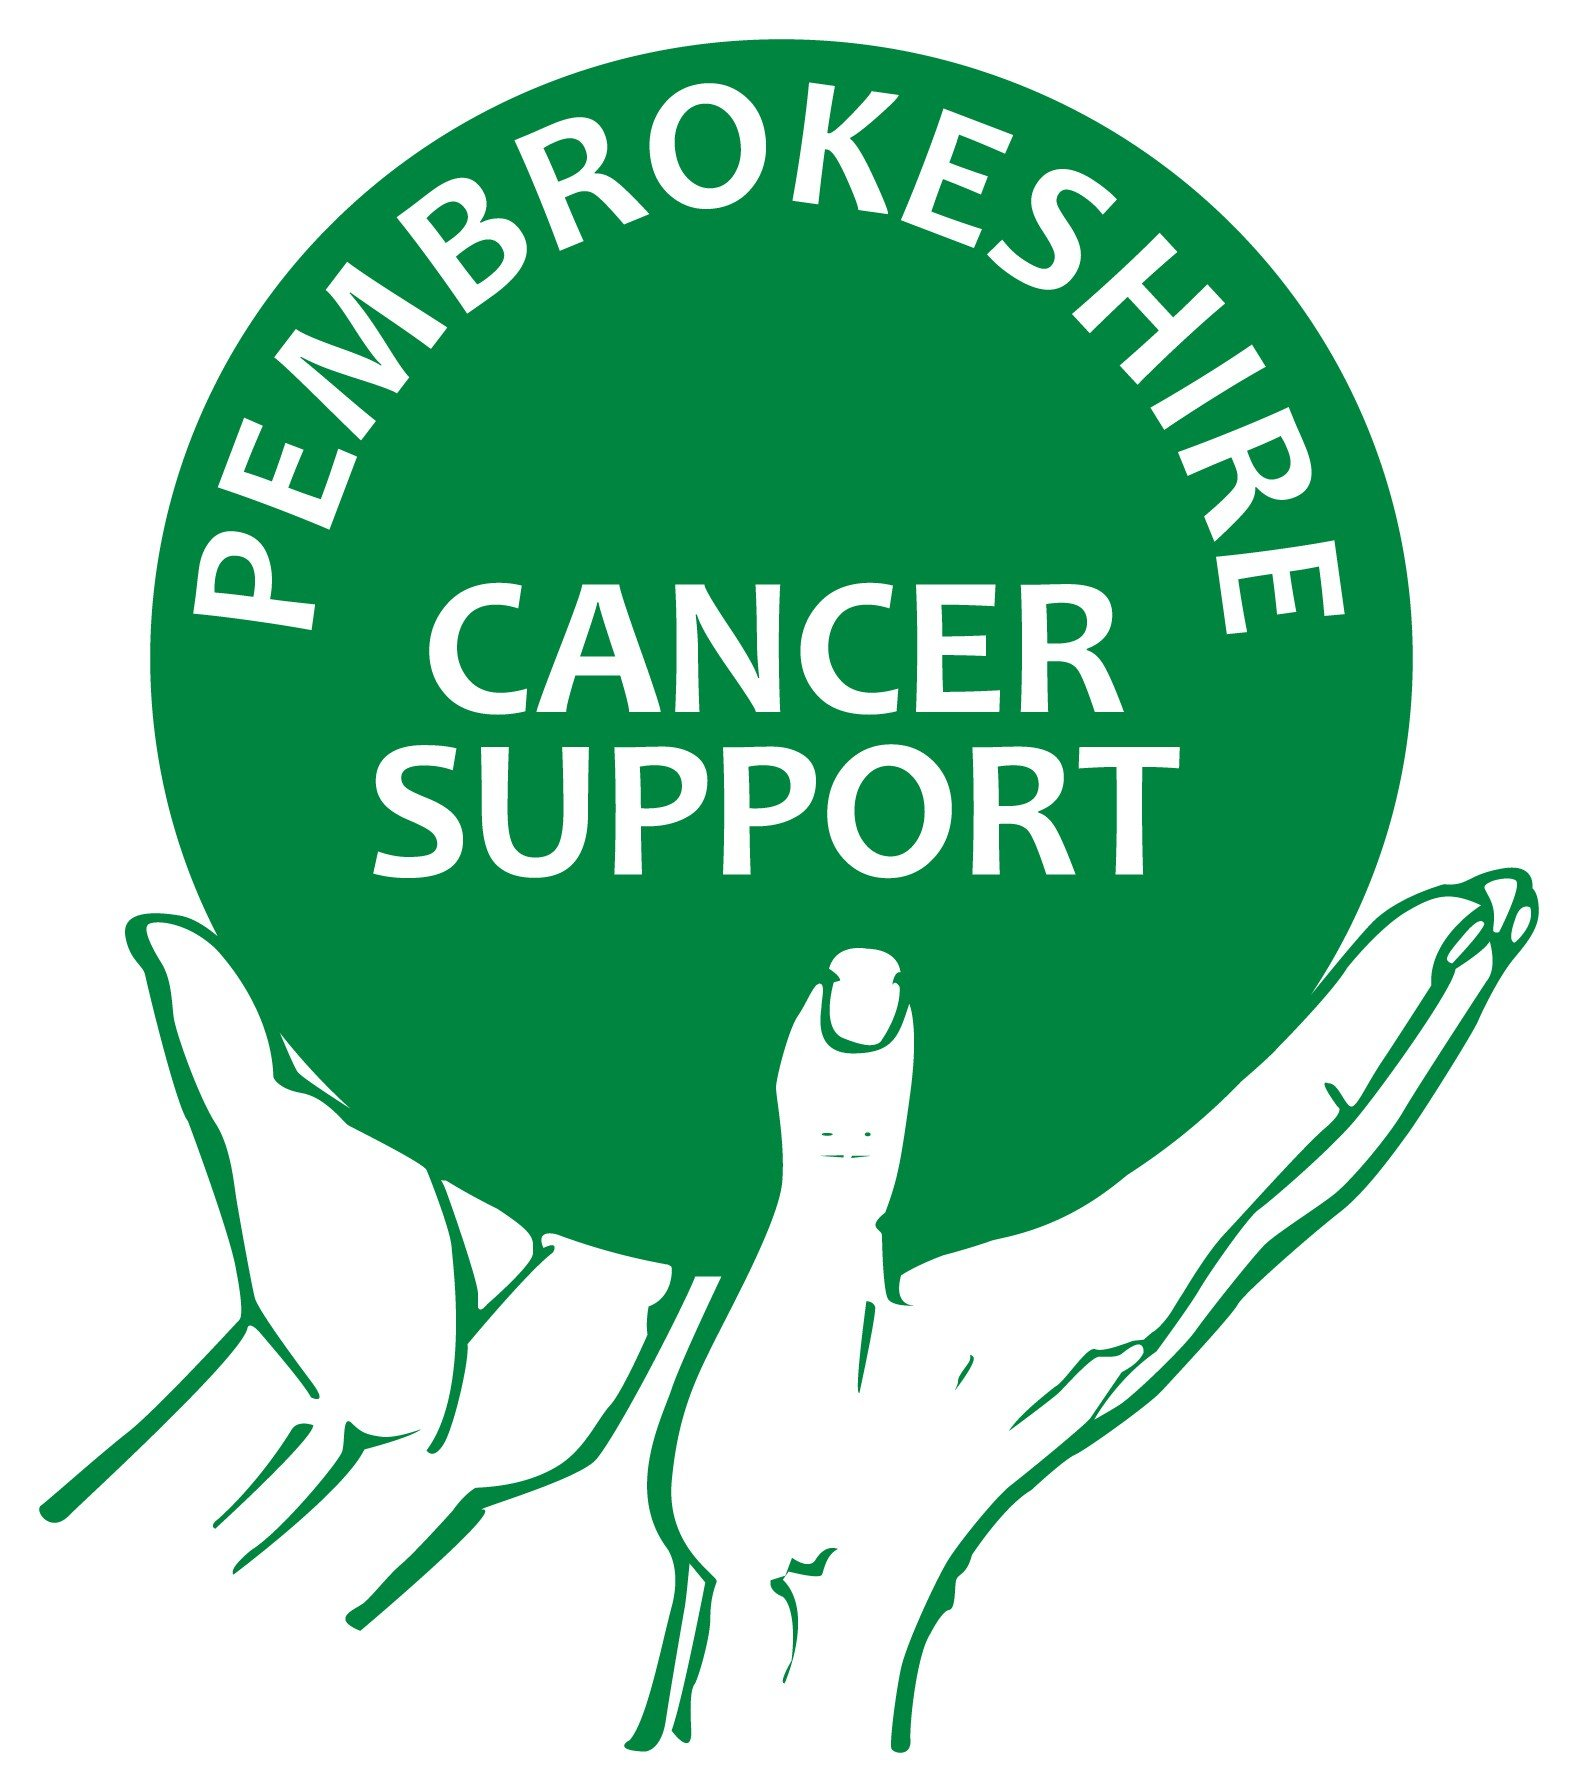 Pembrokeshire%20Cancer%20Support%20Logo.